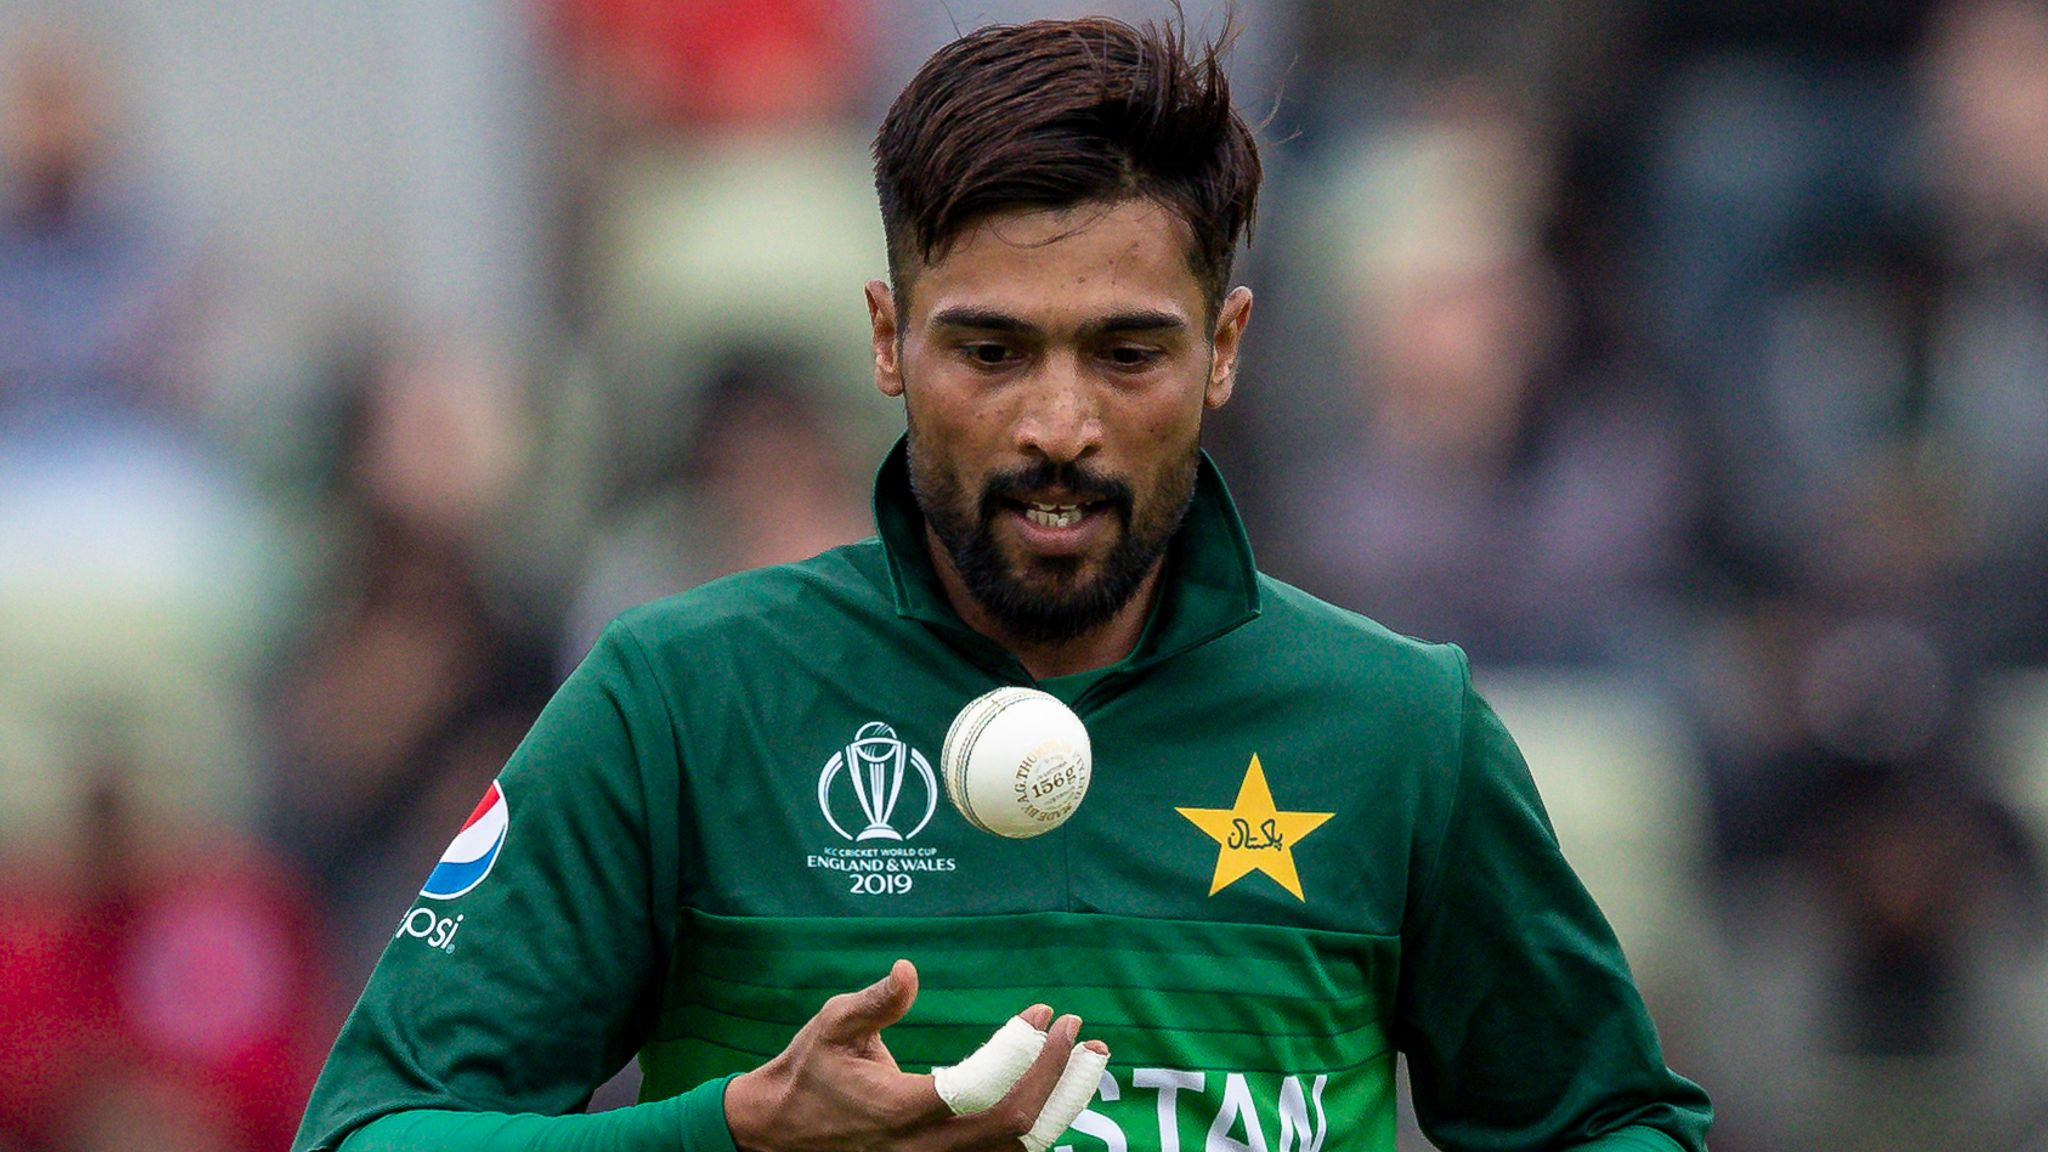 Mohammad Amir: Pakistan fast bowler retires from all international cricket at the age of 28 | Cricket News | Sky Sports